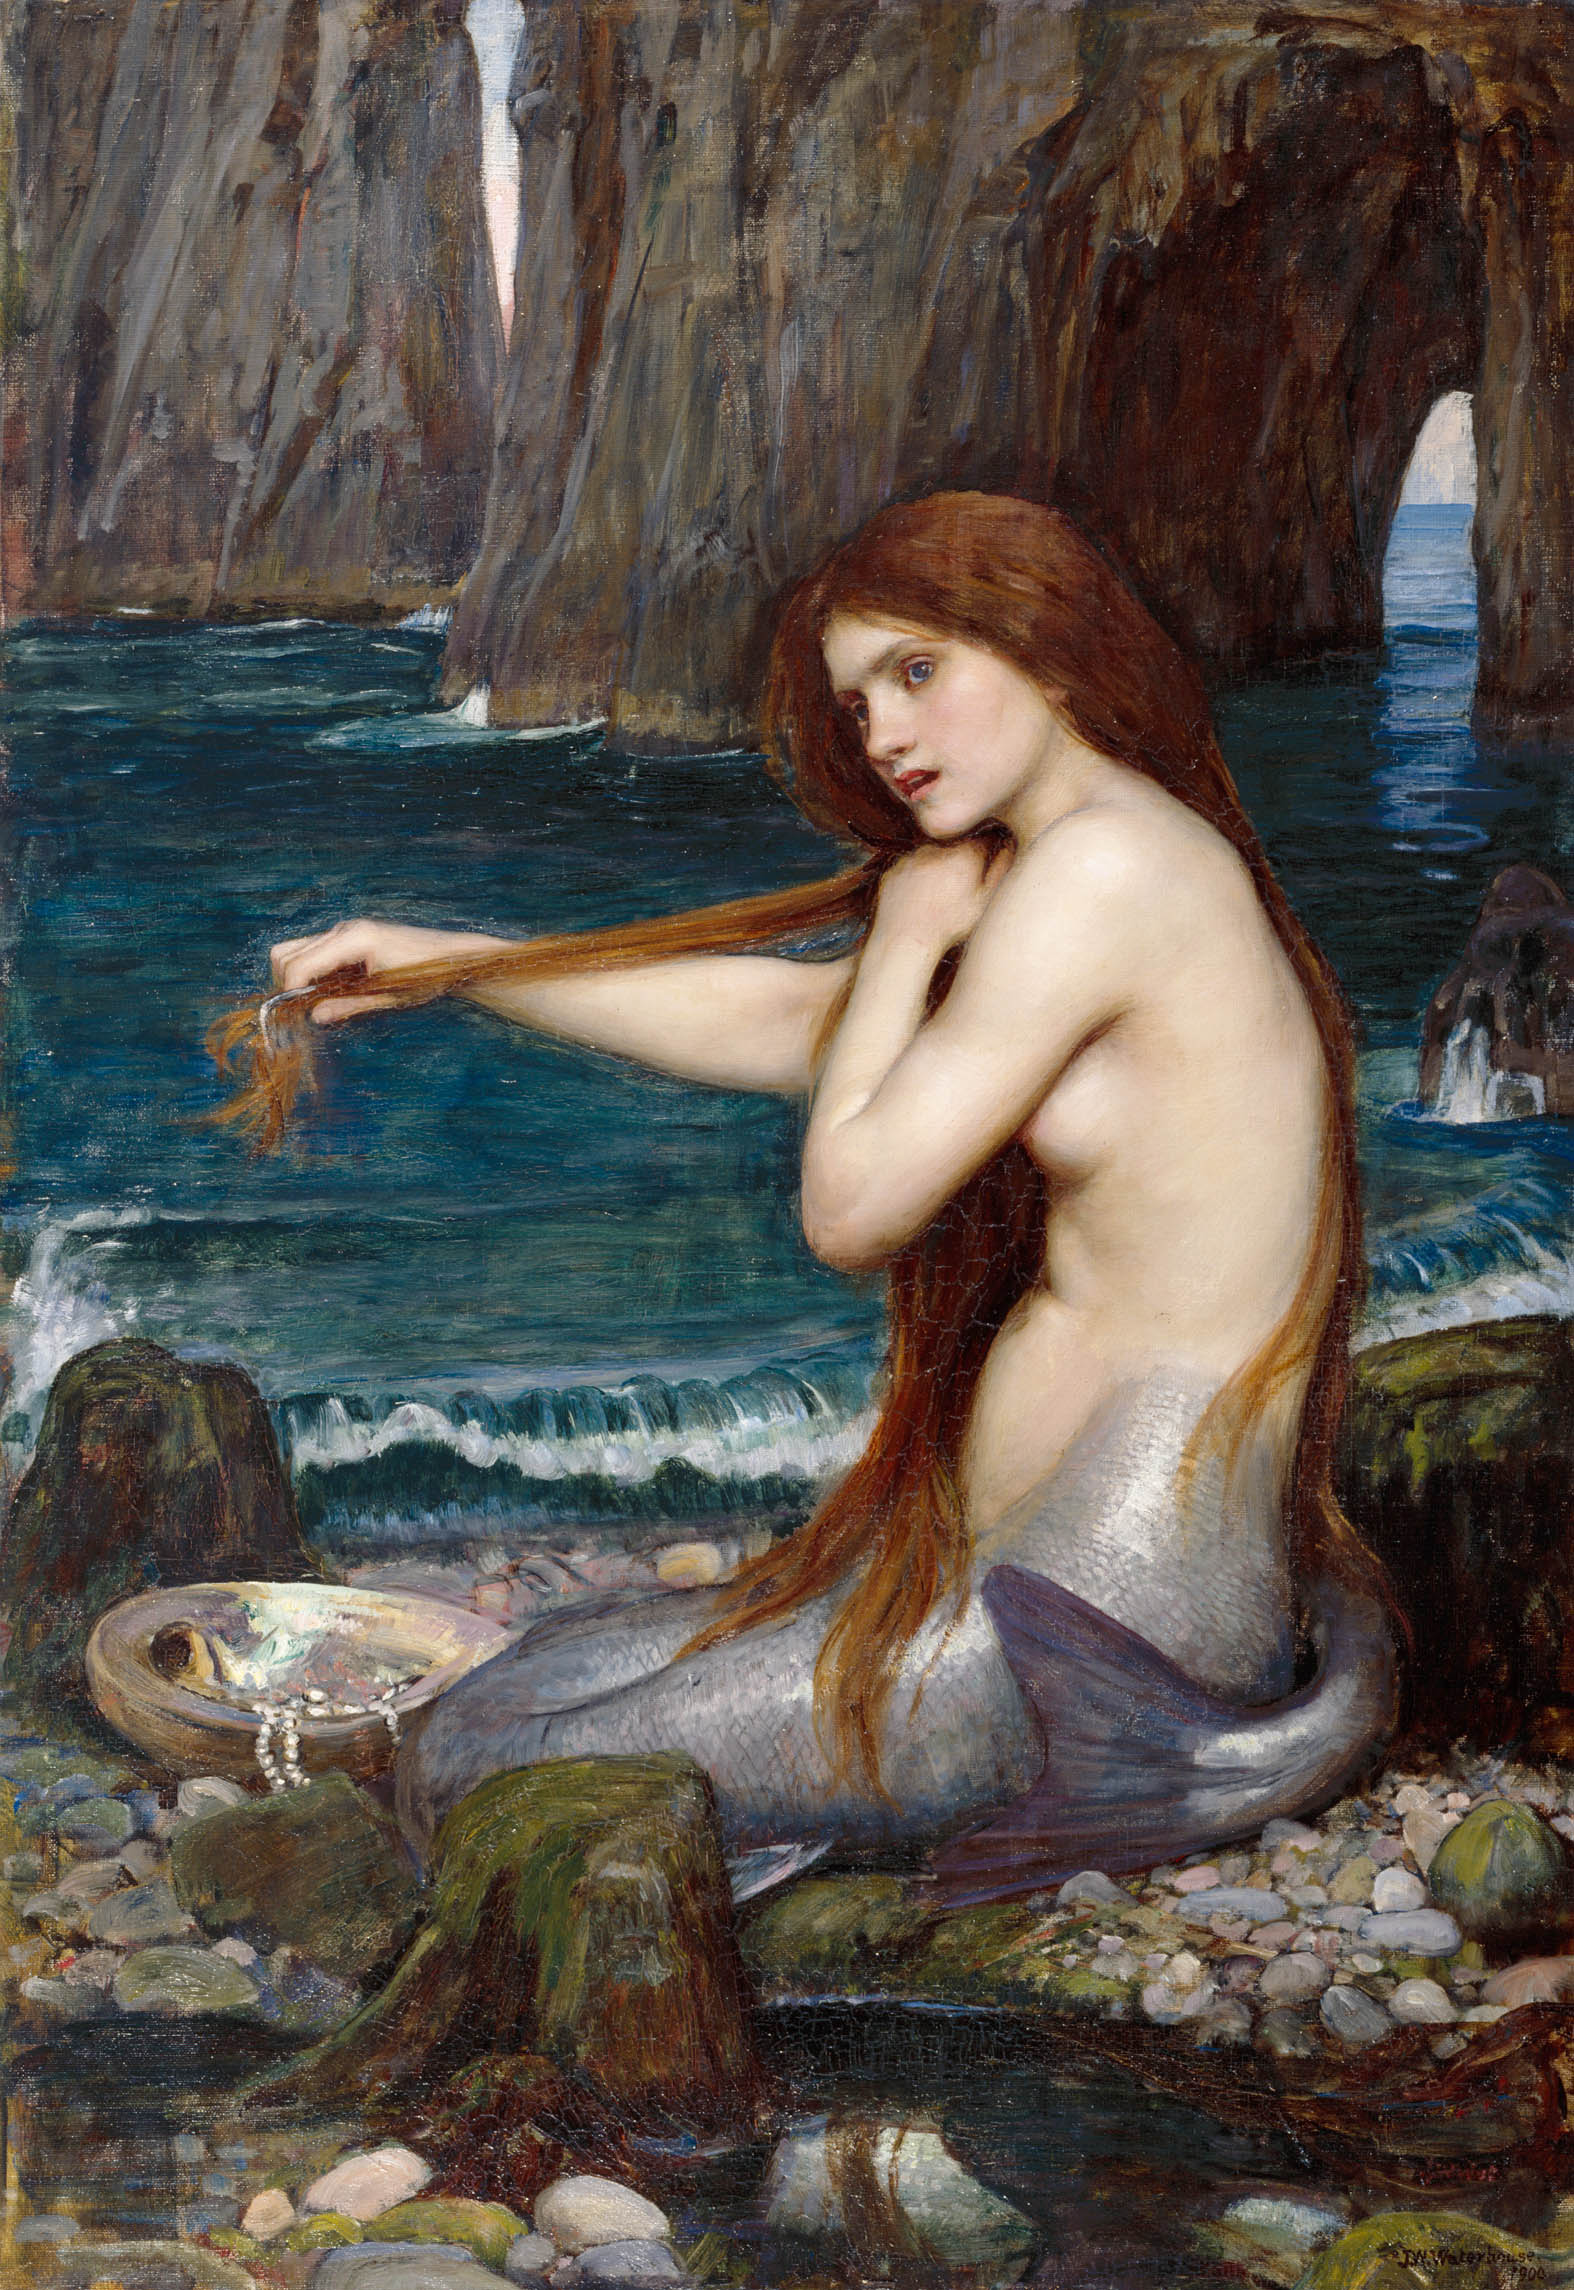 John William Waterhouse,  A Mermaid , 1900, oil on canvas, ® Royal Academy of Arts, London, Photographer John Hammond